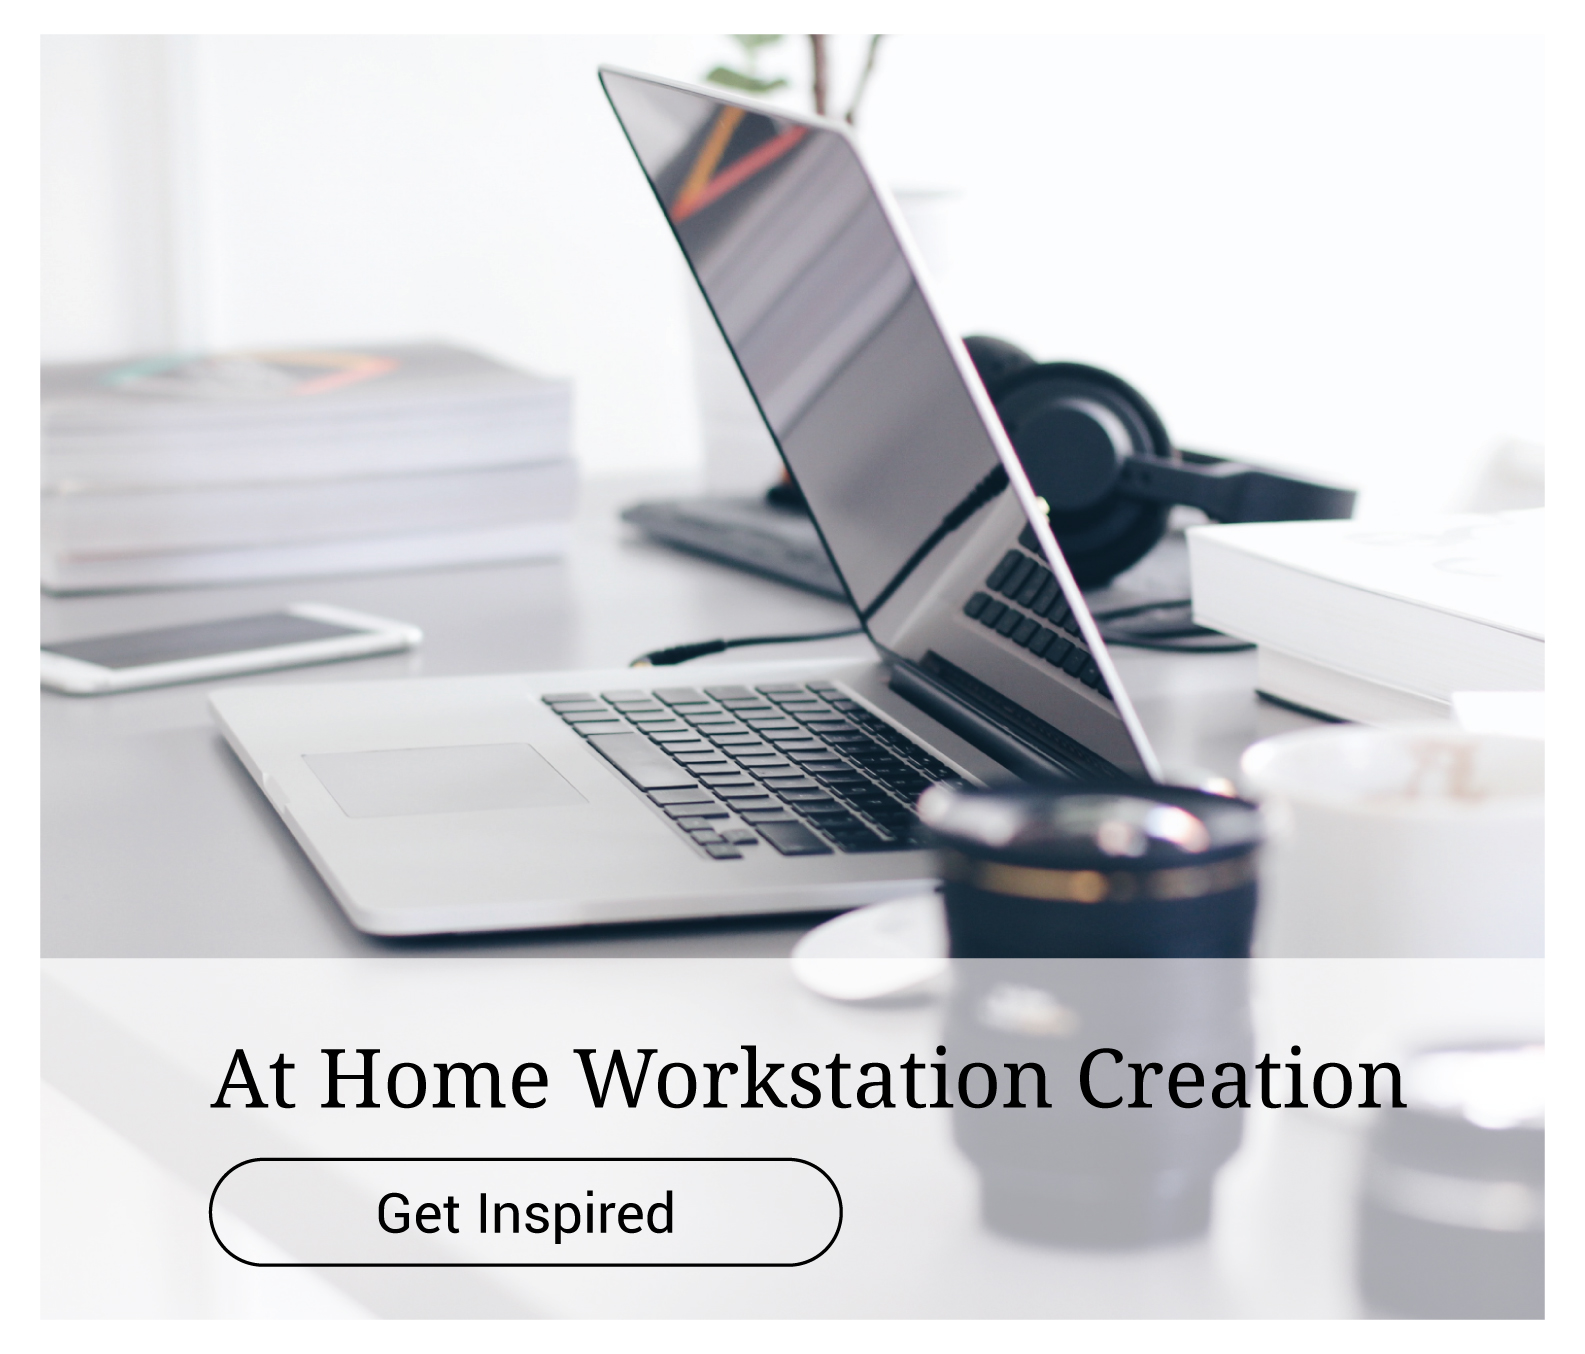 At Home Workstation Creation